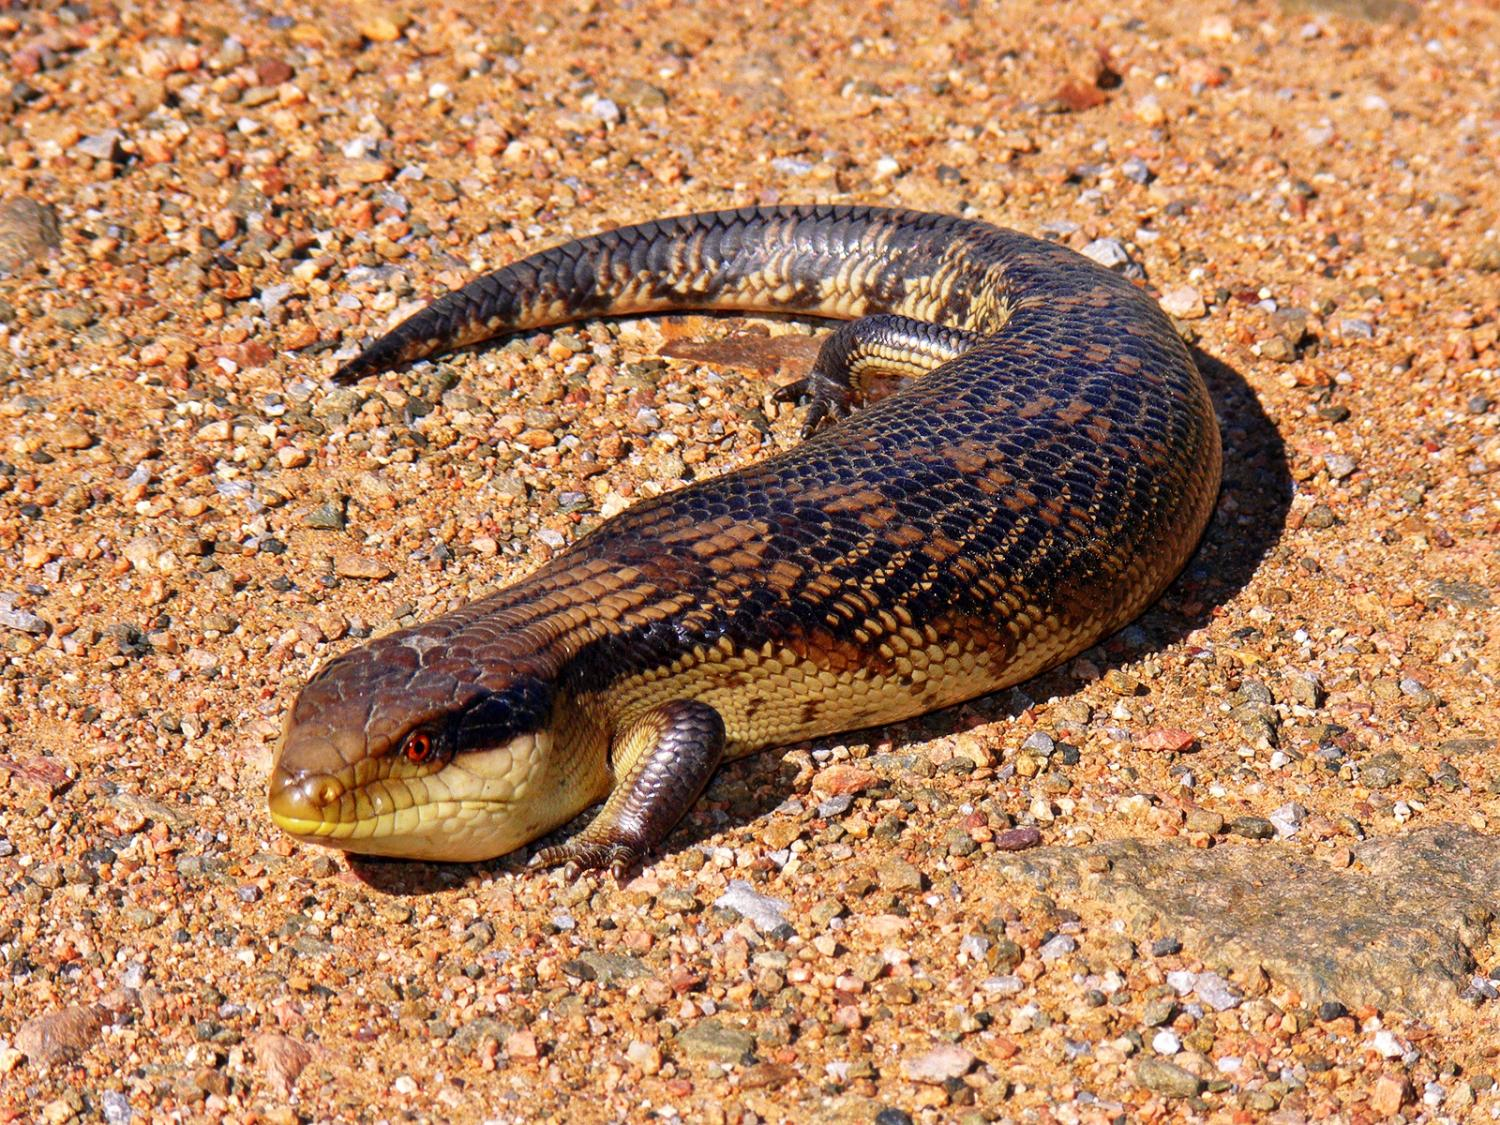 Genetic study of skinks suggests extreme matrotrophy evolved only once in Africa